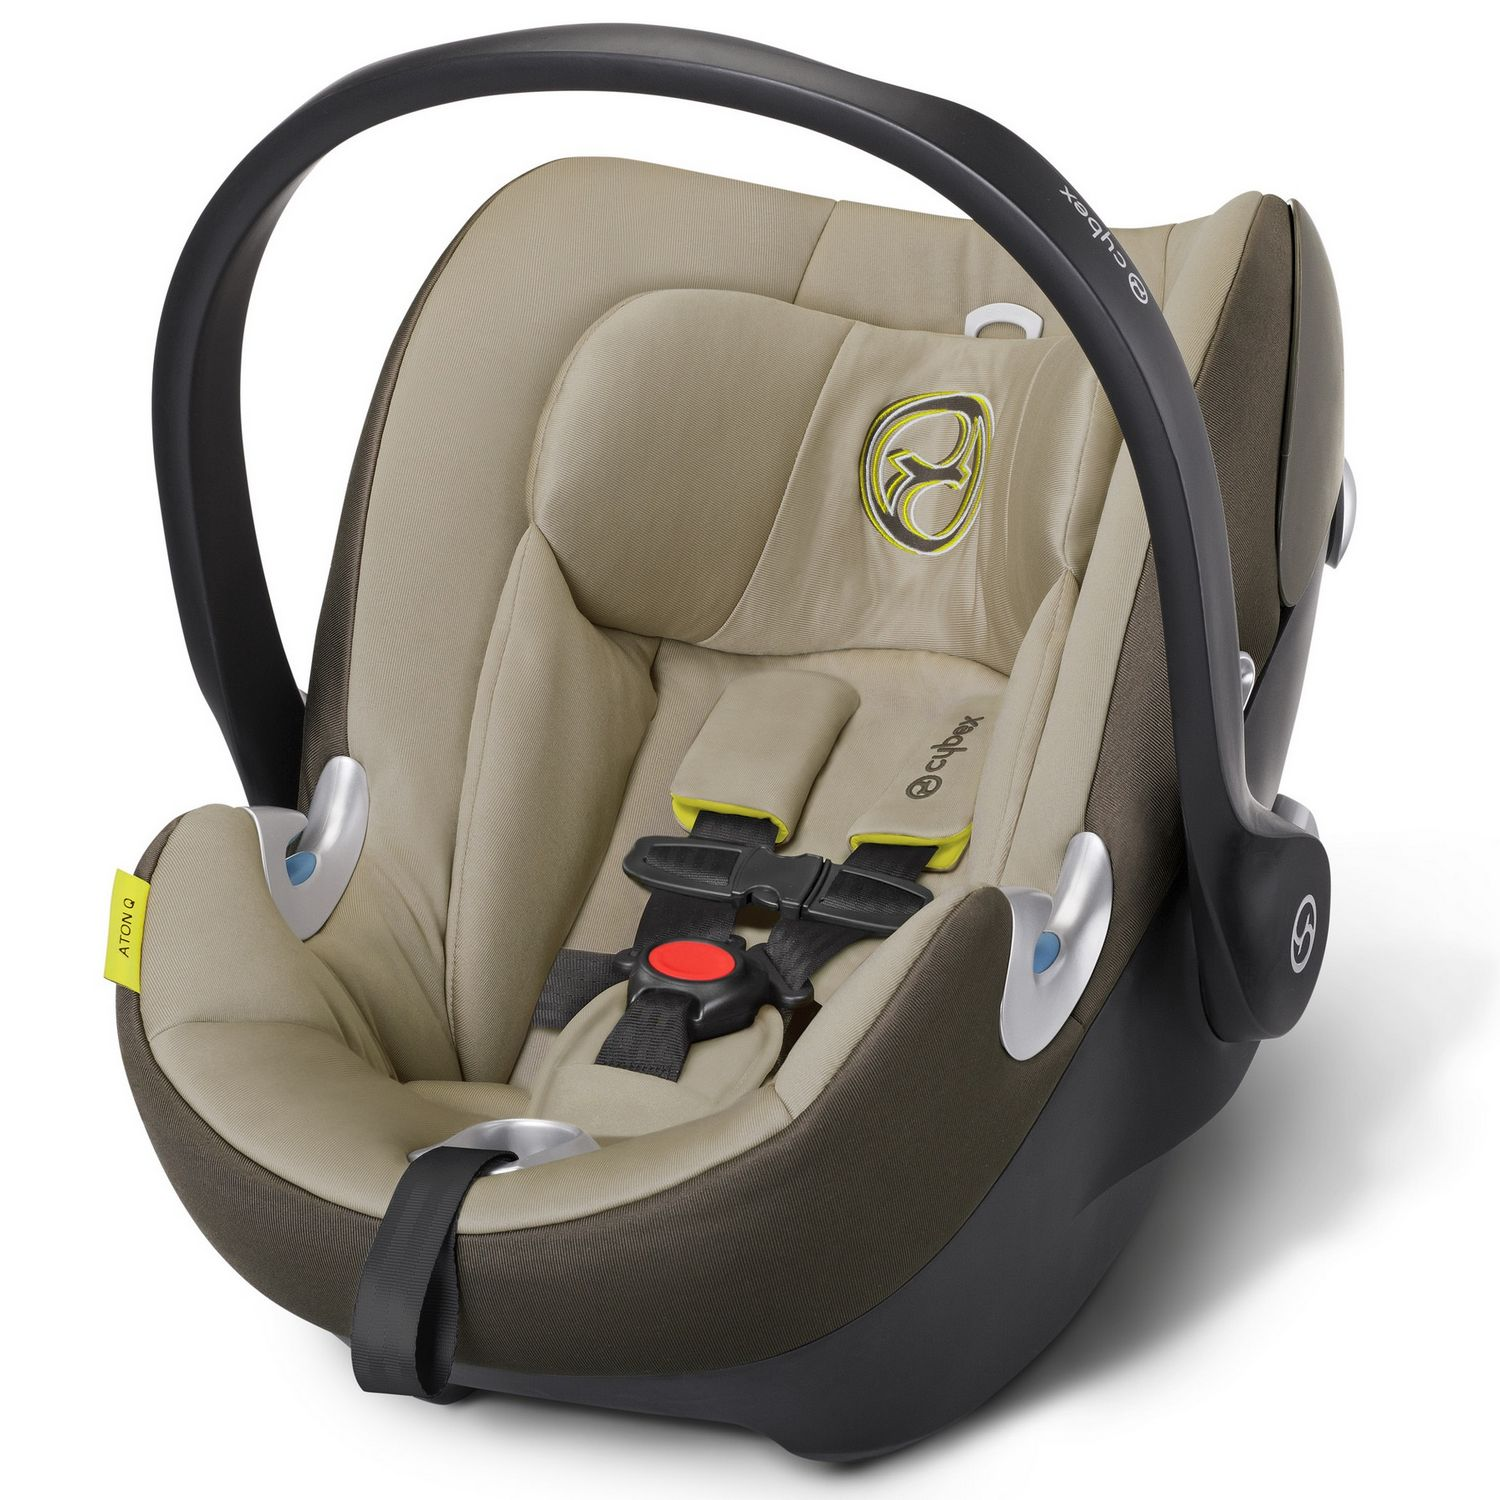 Avocent Aton Q Infant Car Seat - Limestone